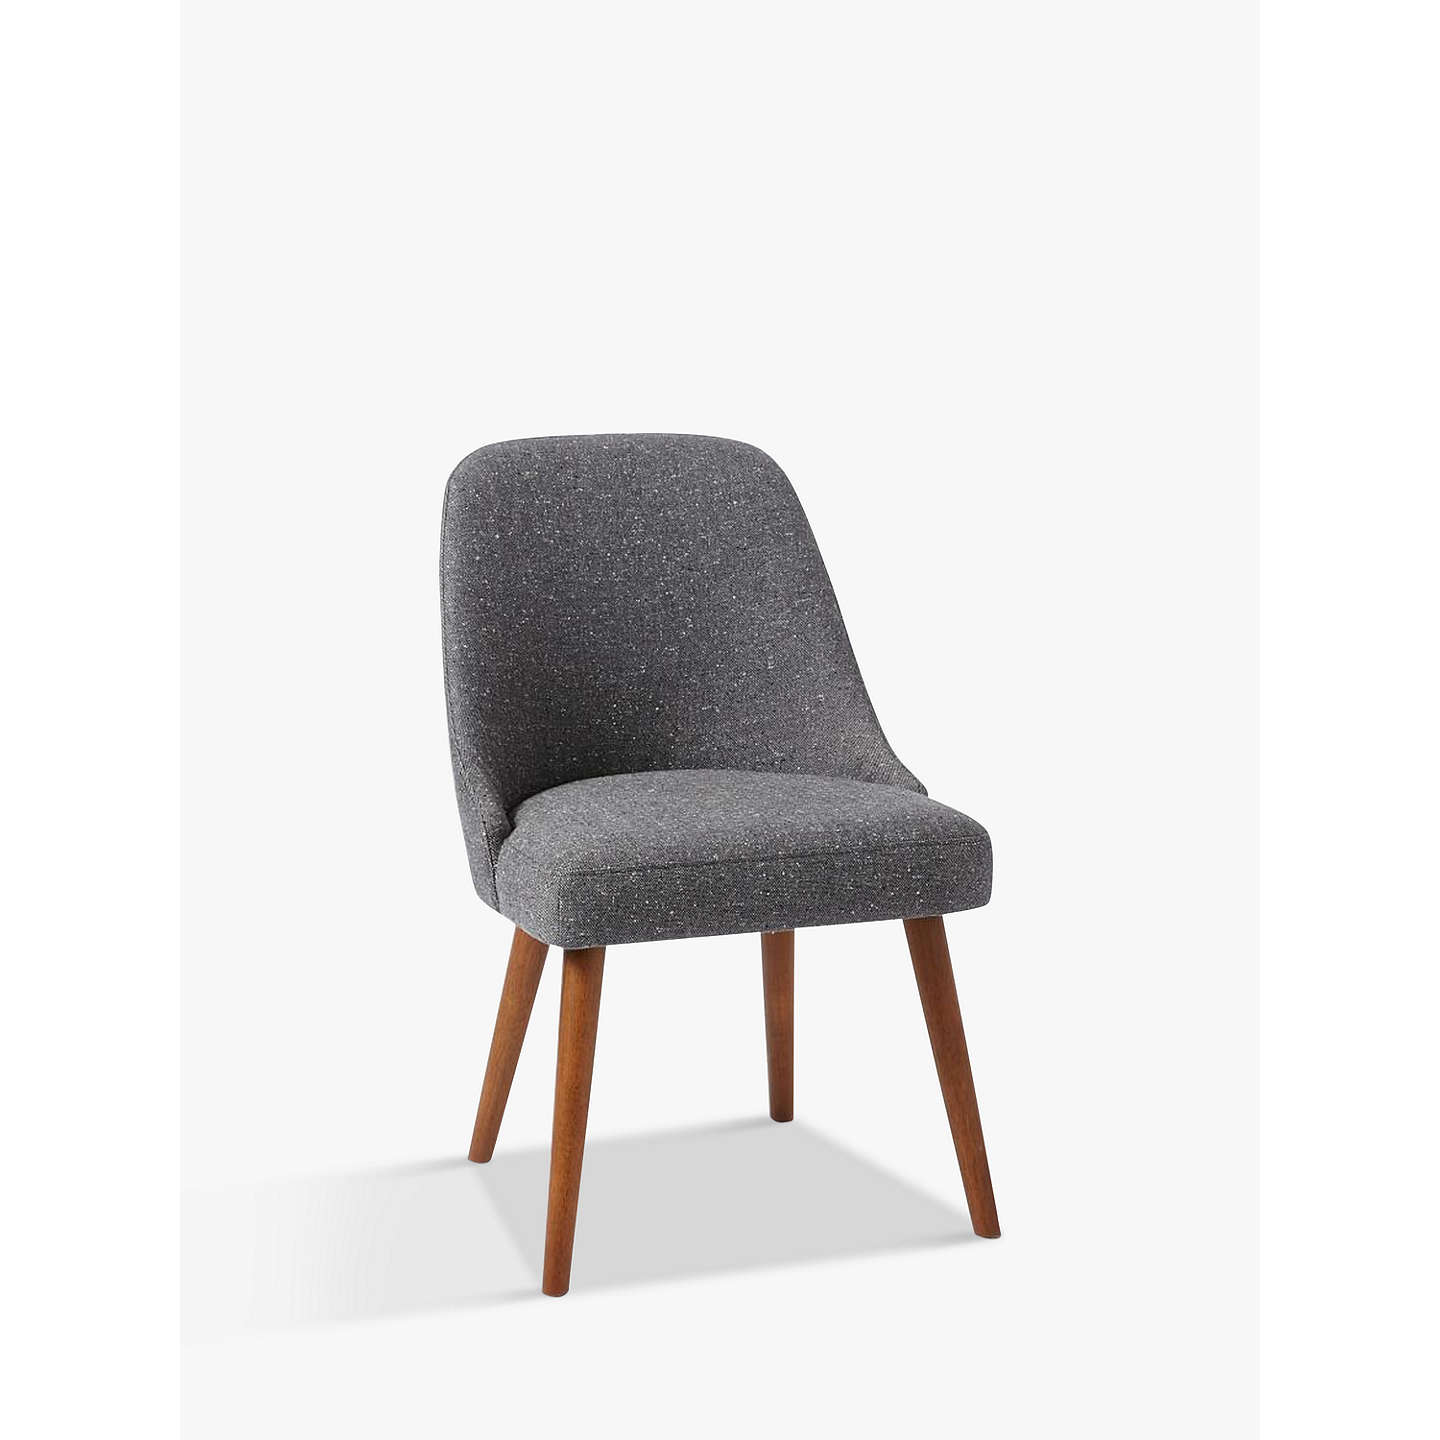 Buywest Elm Mid Century Dining Chair, Salt And Pepper Tweed Online At  Johnlewis.